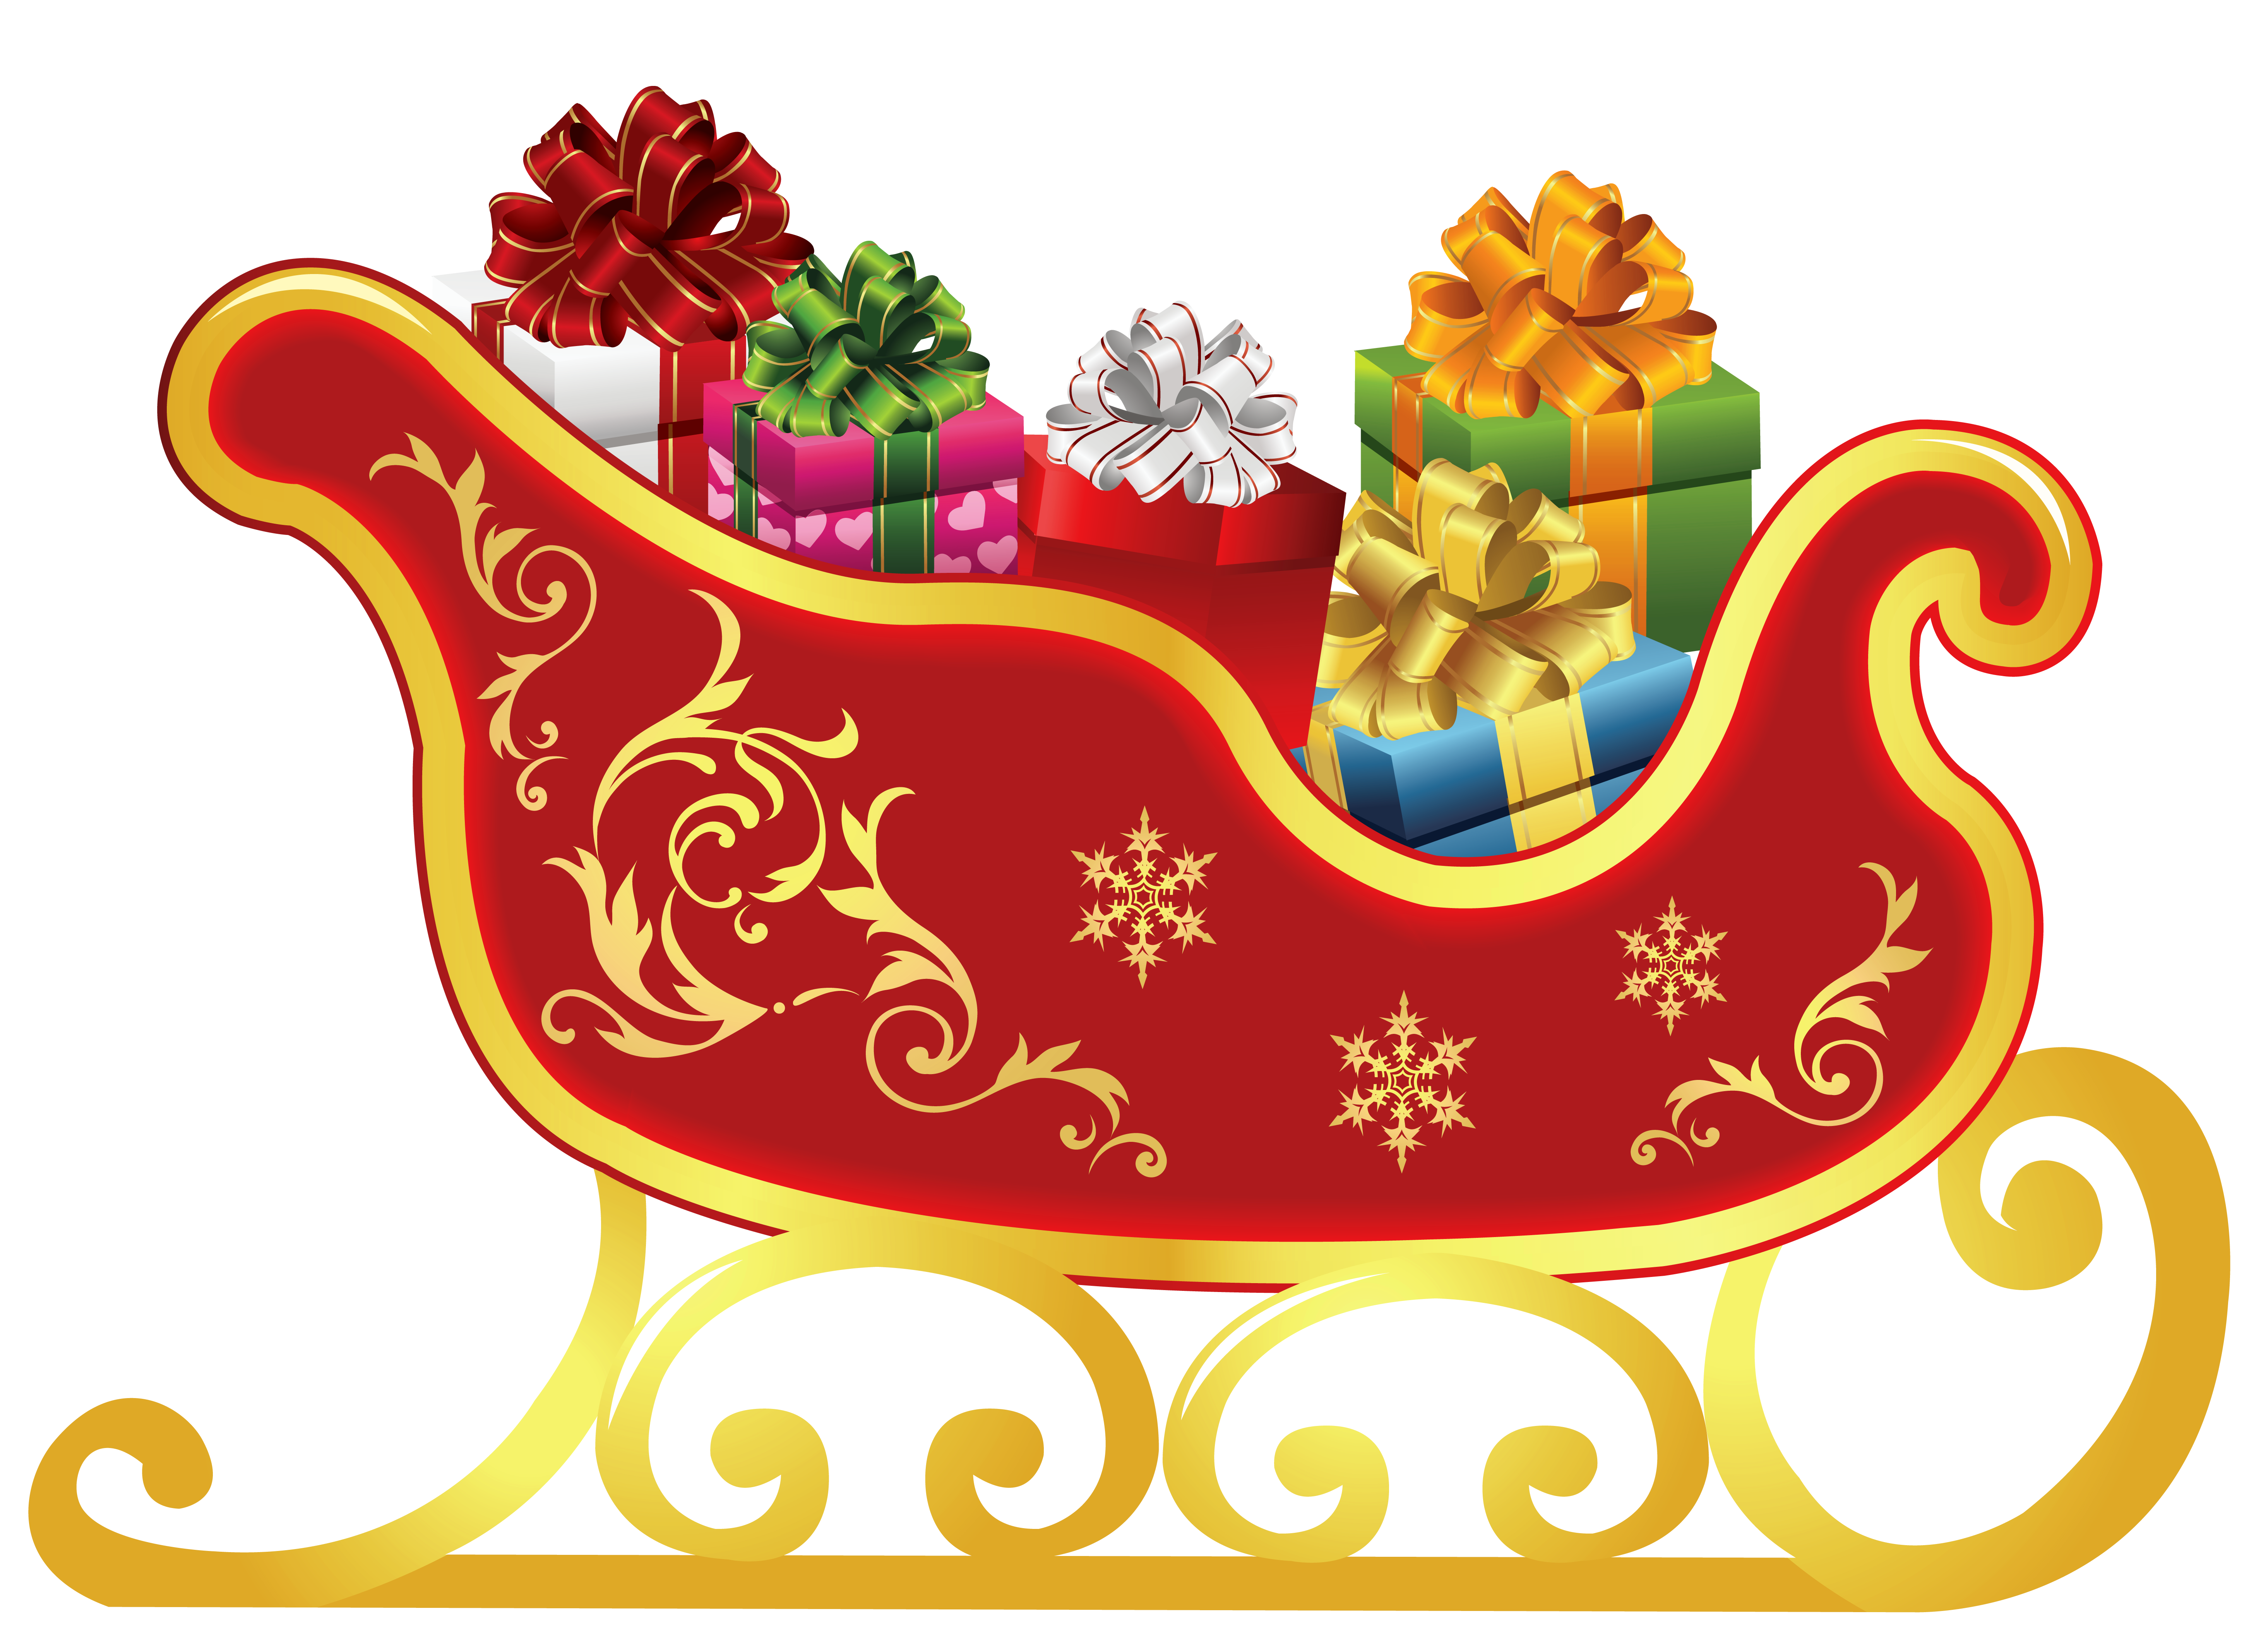 Cliparts download clip art. Free clipart sleigh